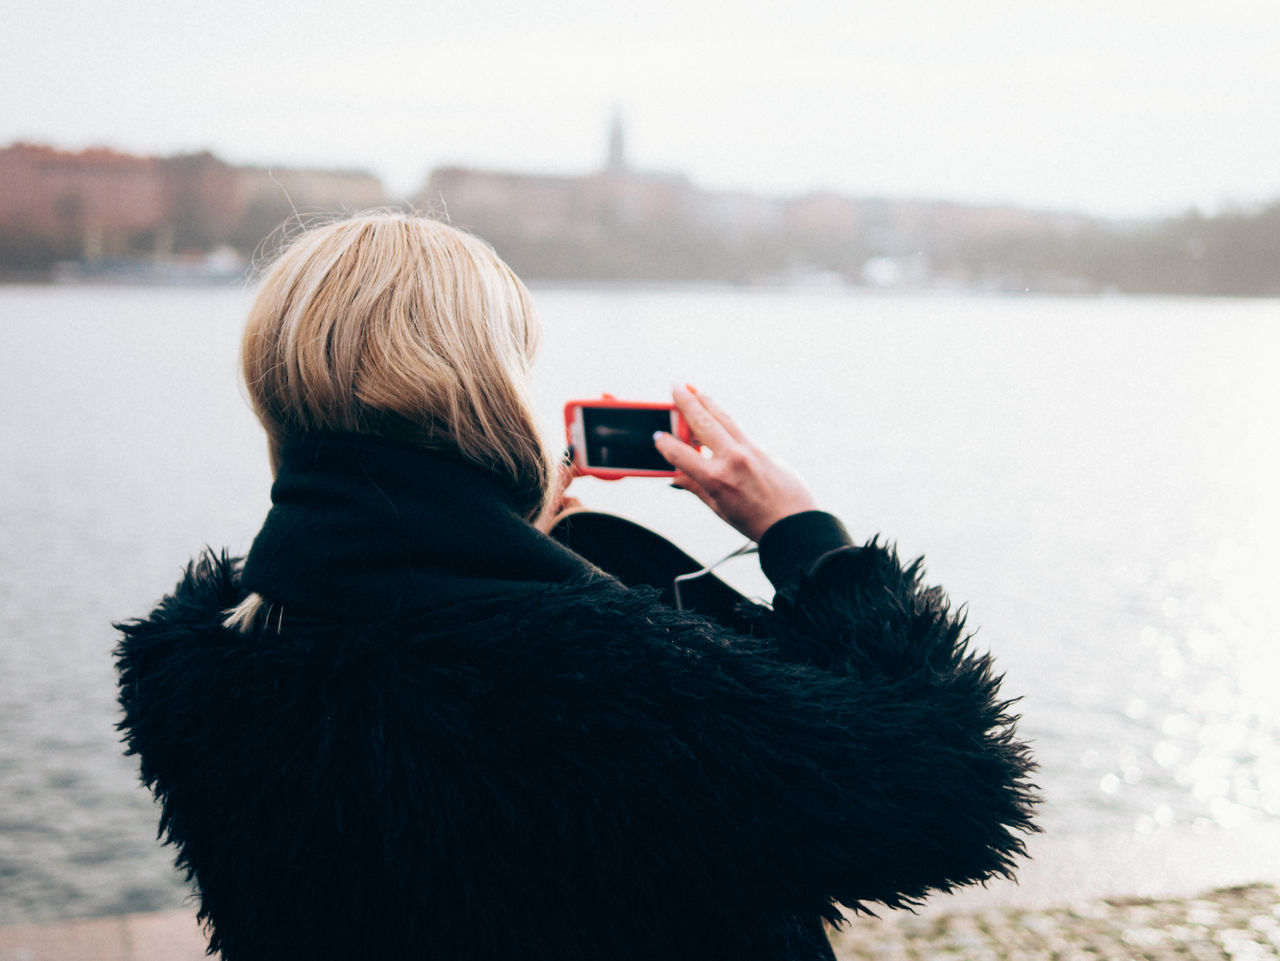 stockholm Blond Hair Camera - Photographic Equipment Photographing Photography Themes Portable Information Device Rear View Warm Clothing Women